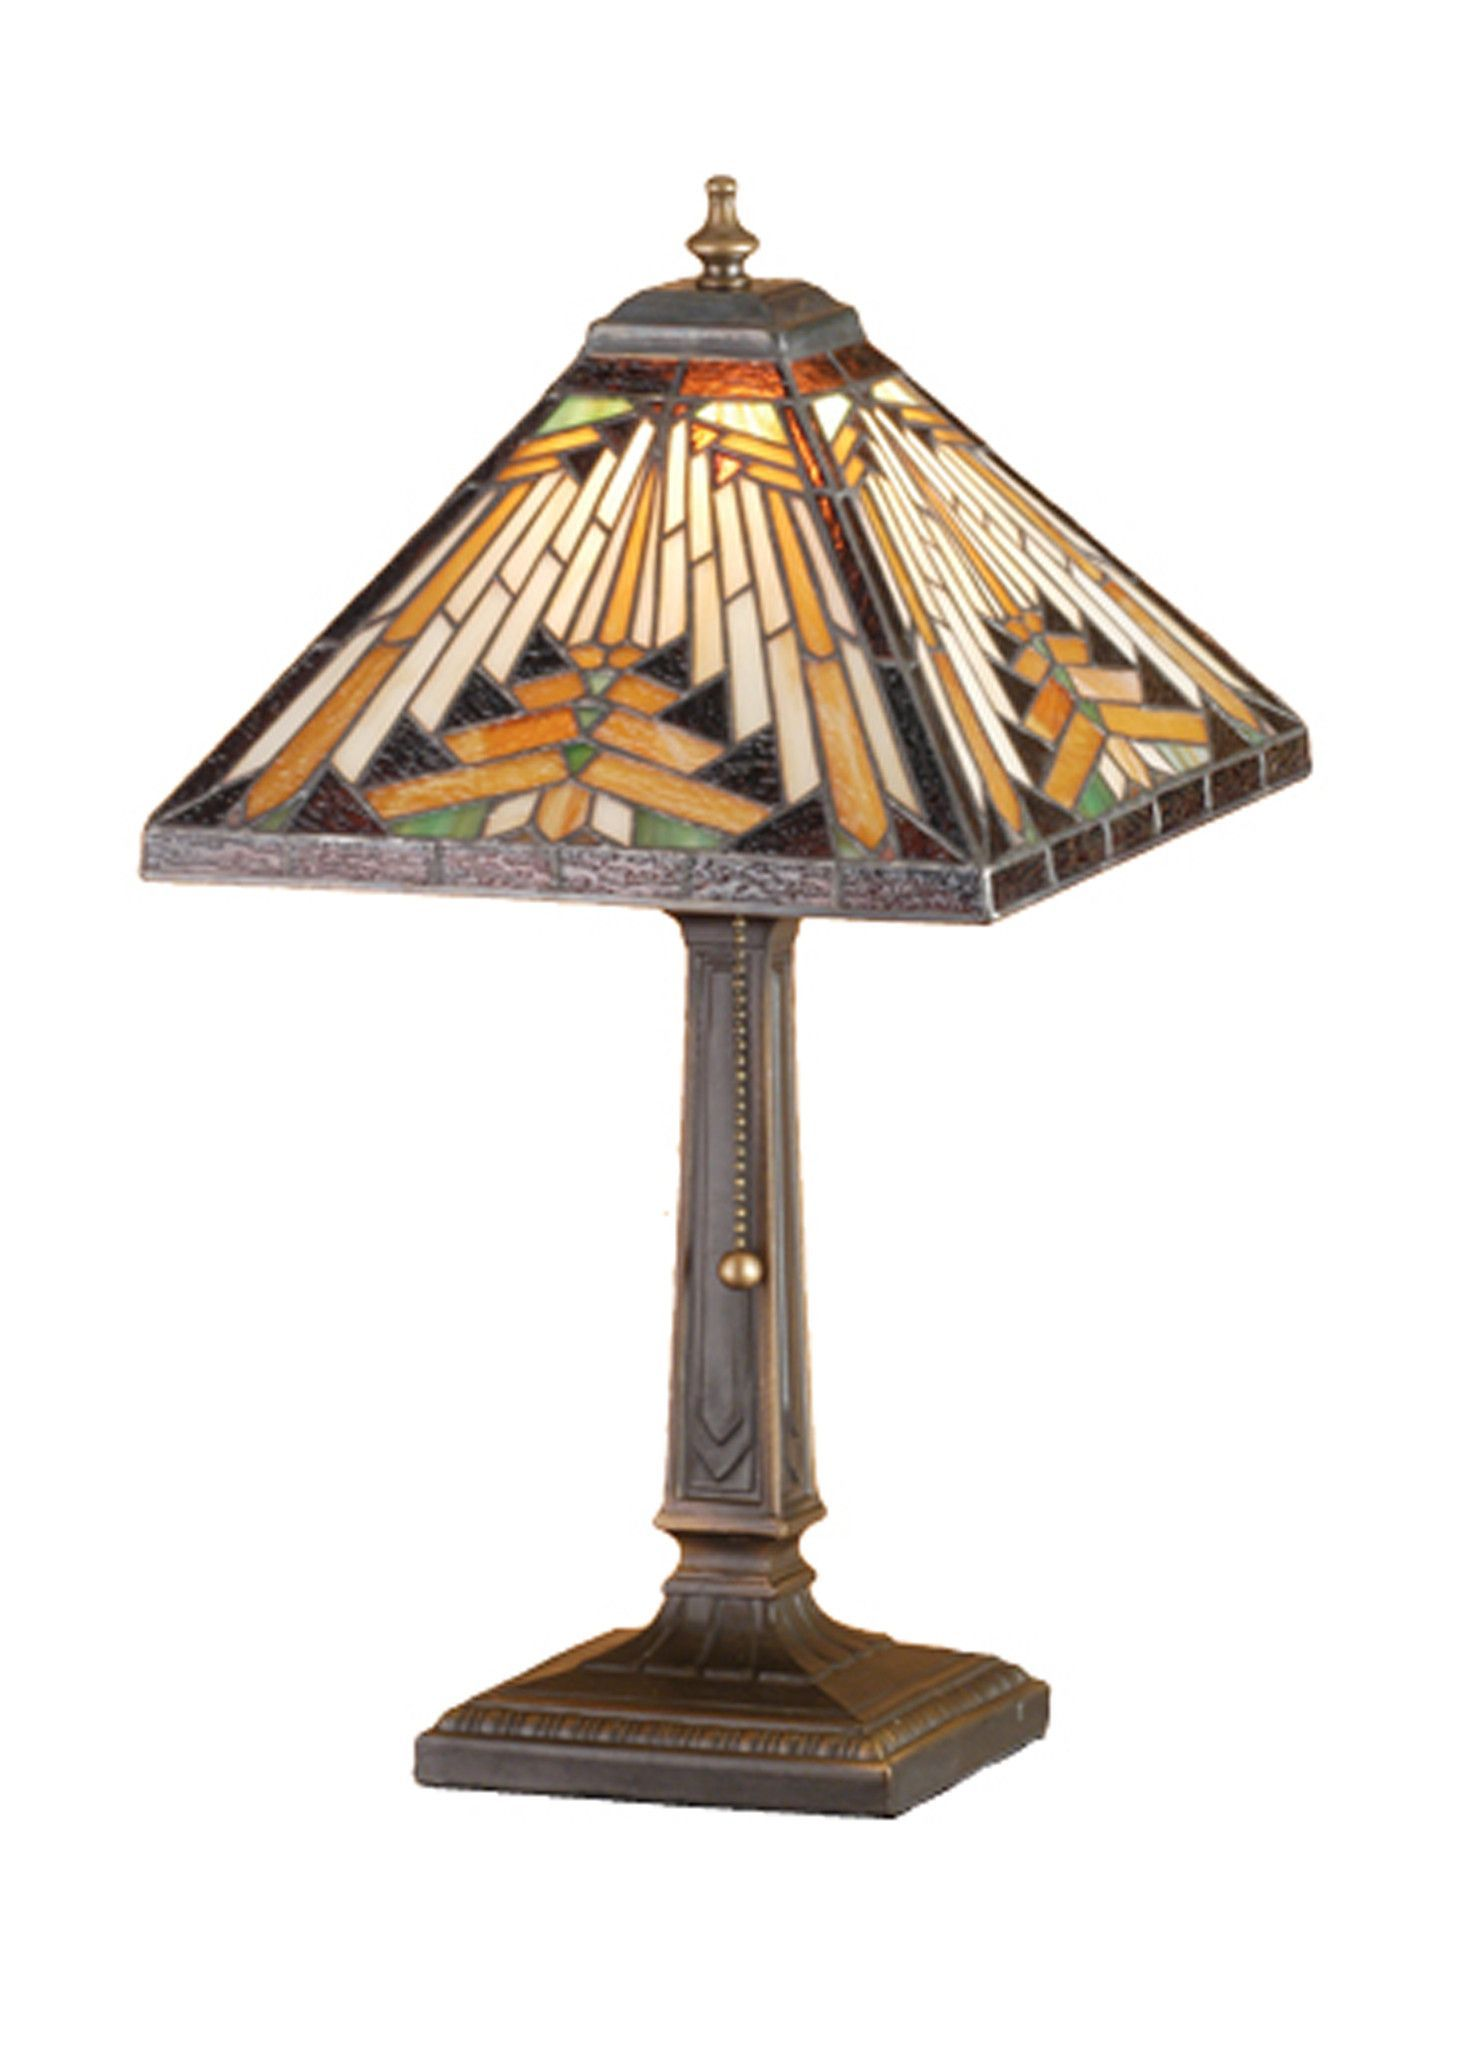 meyda nuevo mission accent lamp tiffiney such table tiffany lamps ethan allen dining room sets simon lee furniture blue chest chairs counter height rectangular magnussen side